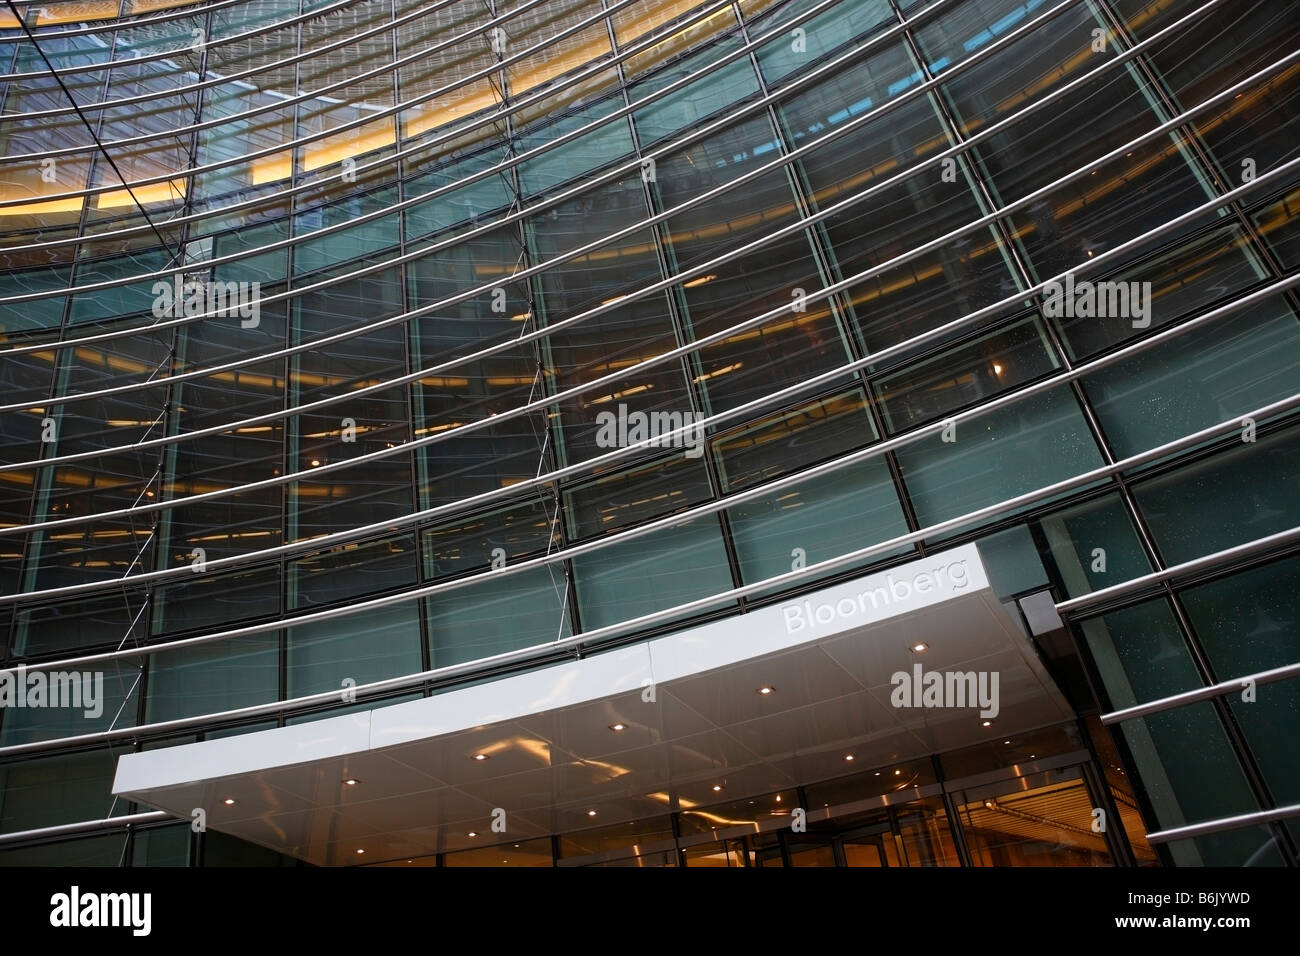 bloomberg llc stock photos amp bloomberg llc stock images